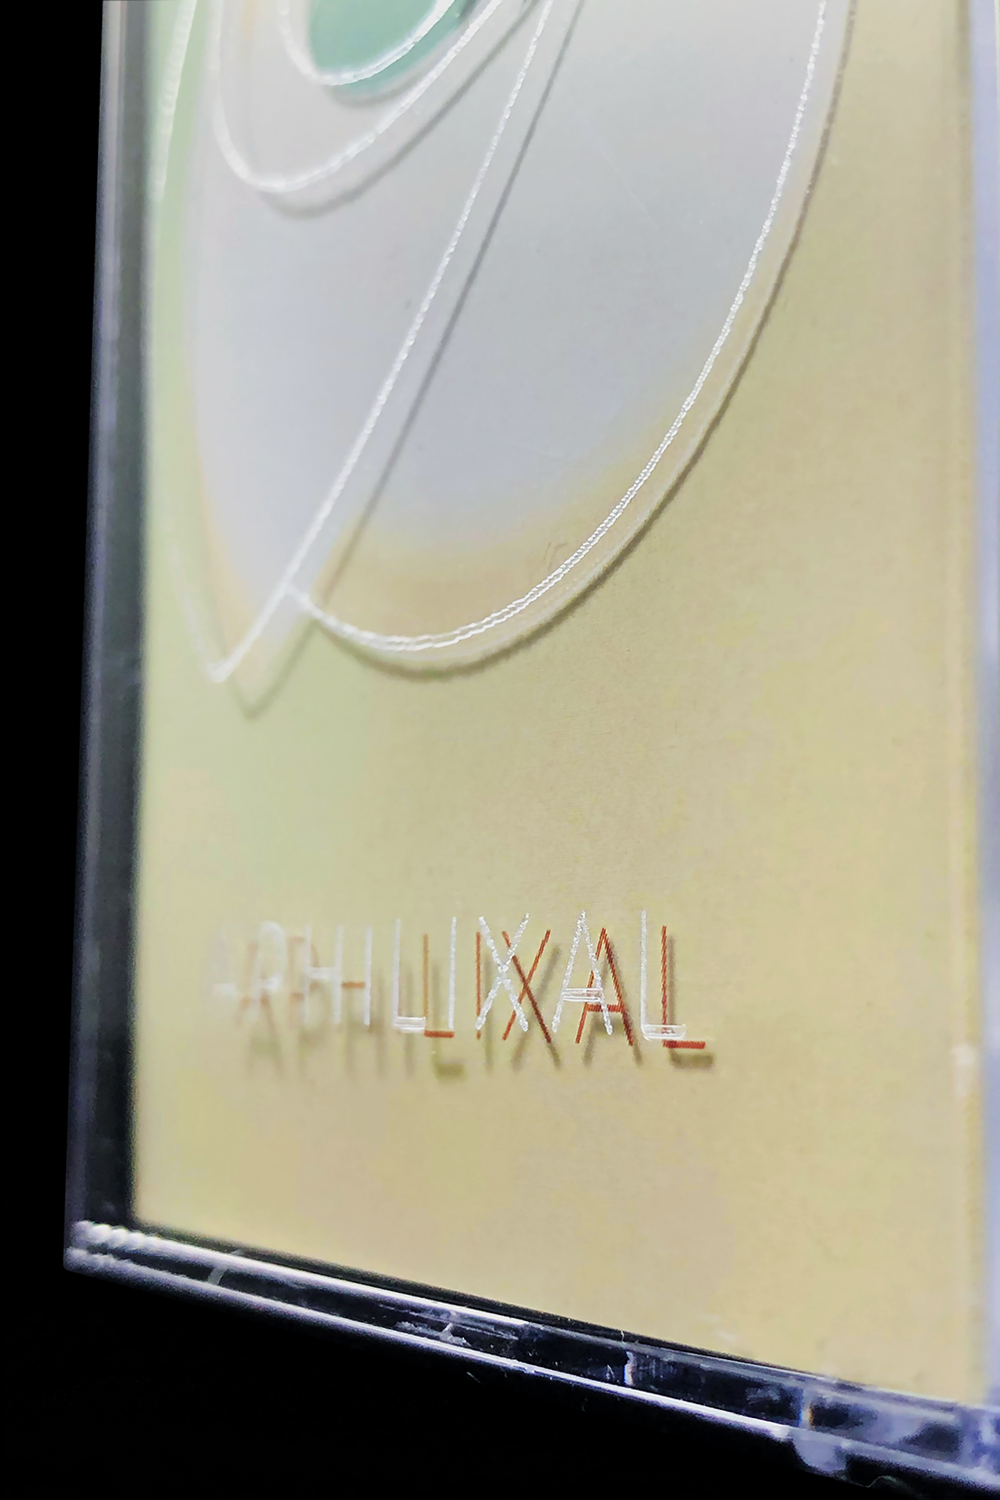 Aphilixal-Engraving-Detail